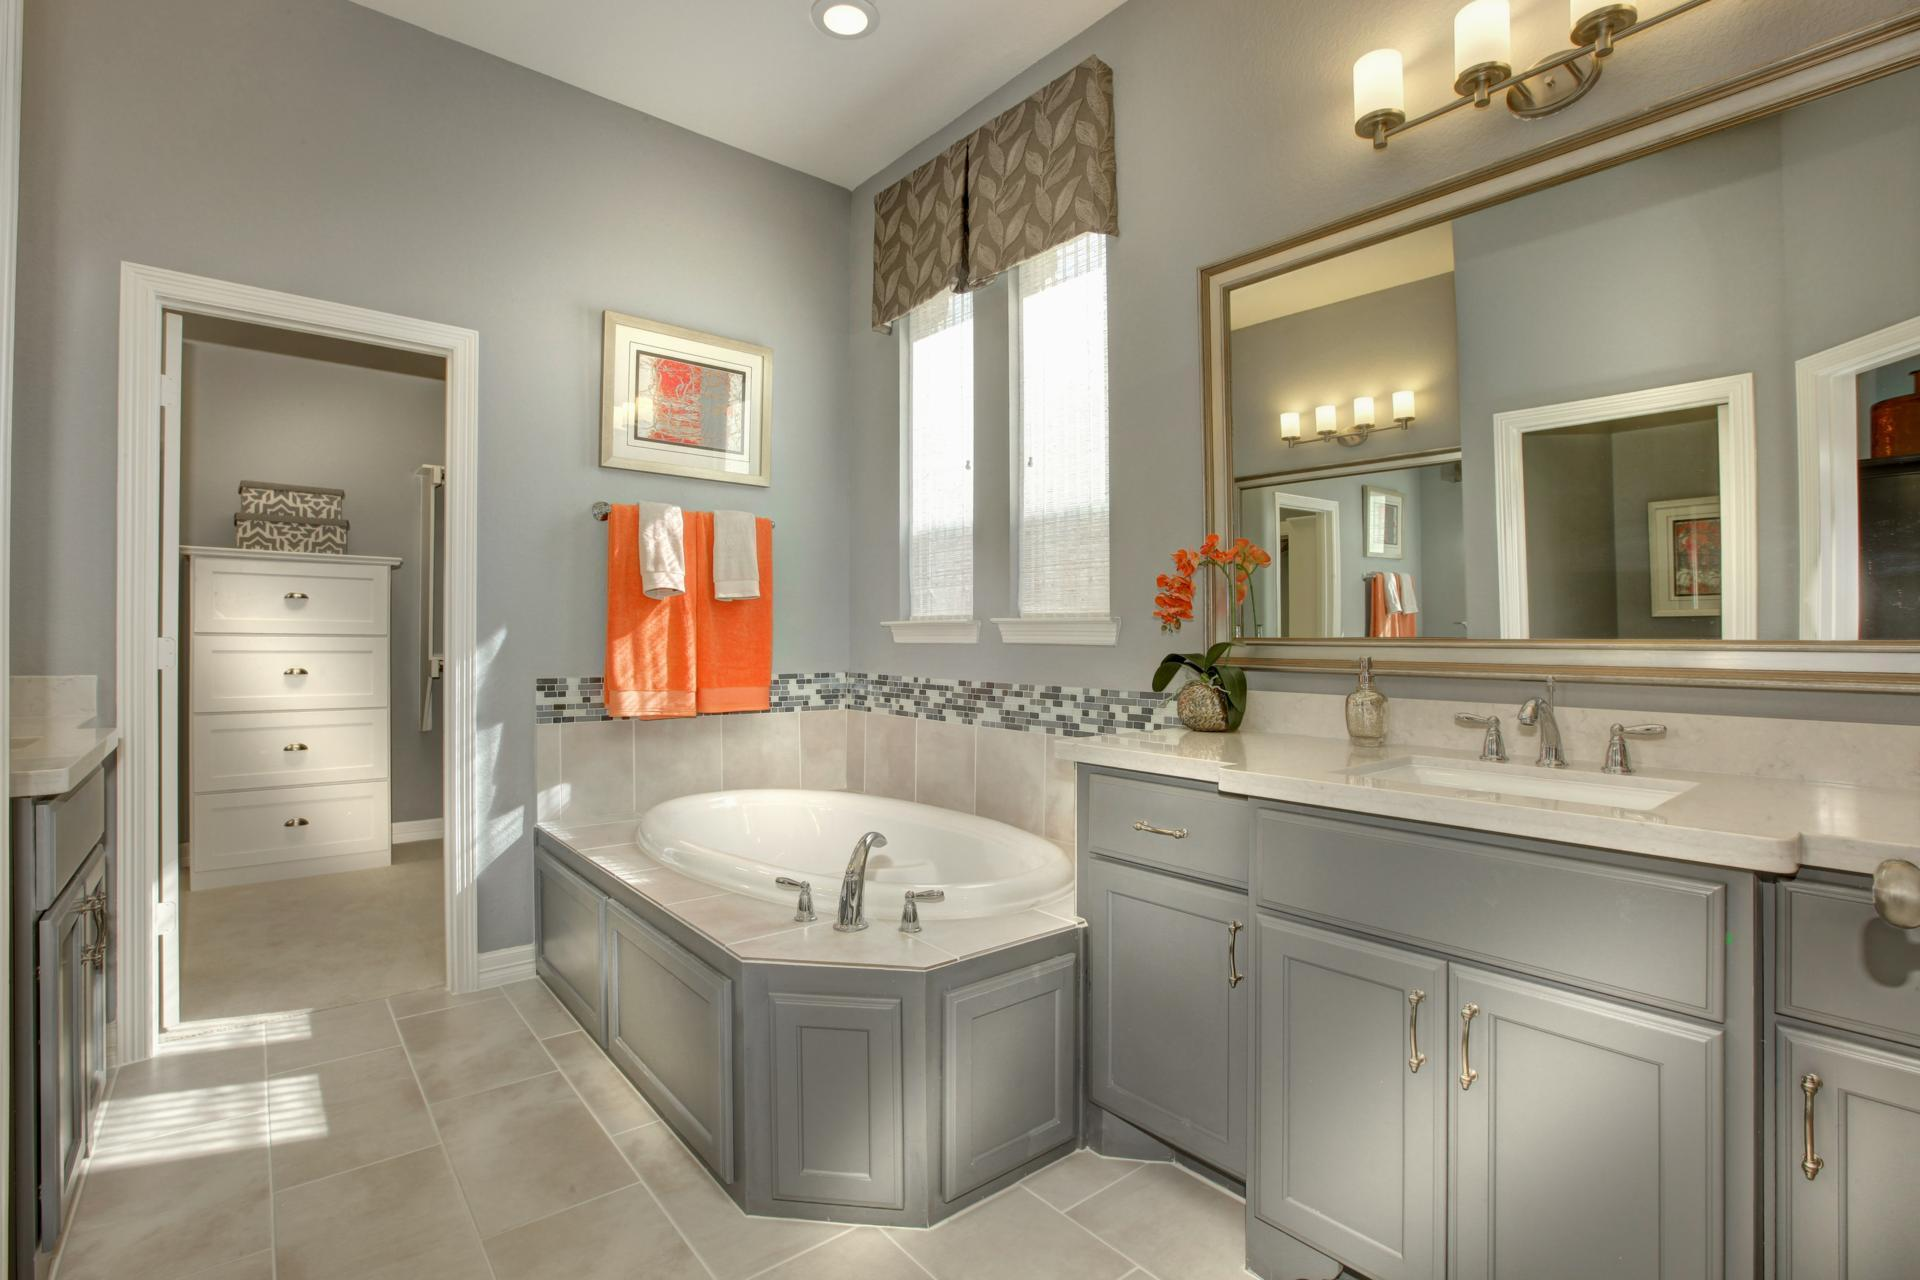 Bathroom featured in the Deerfield II By Drees Custom Homes in Austin, TX